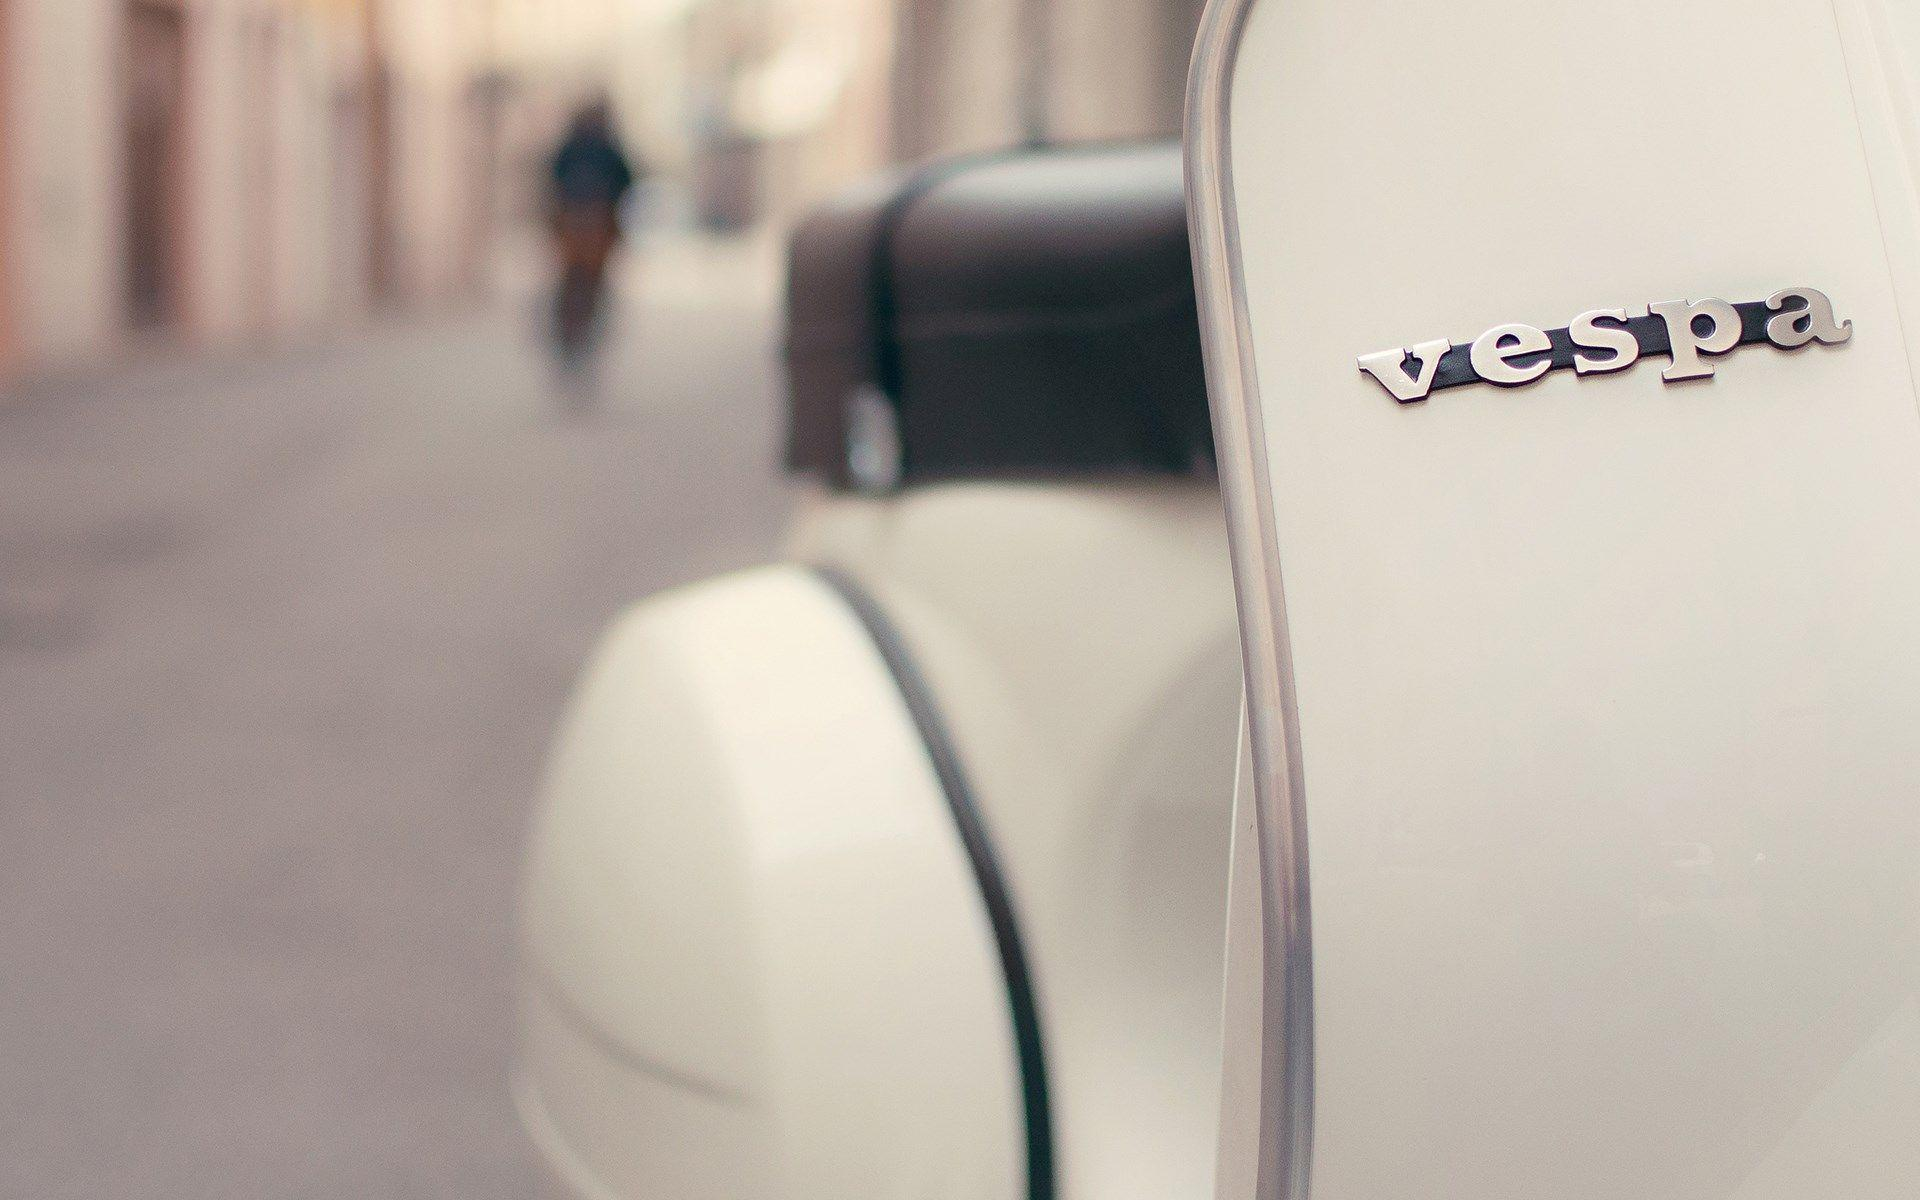 Street Focus Vespa Scooter Logo HD Wallpaper - ZoomWalls